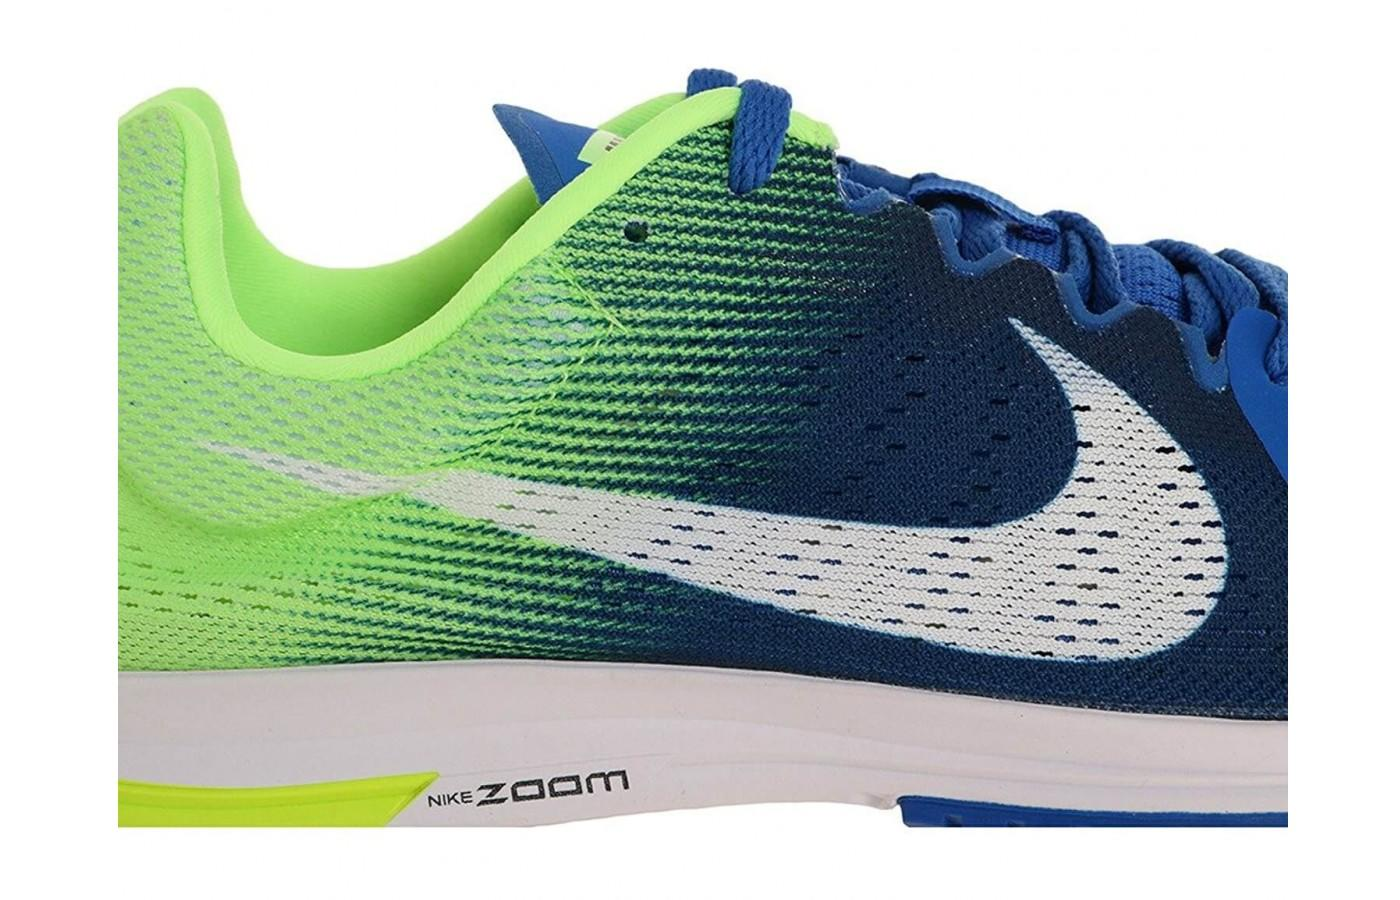 The midsole features Nike's patented Zoom material.